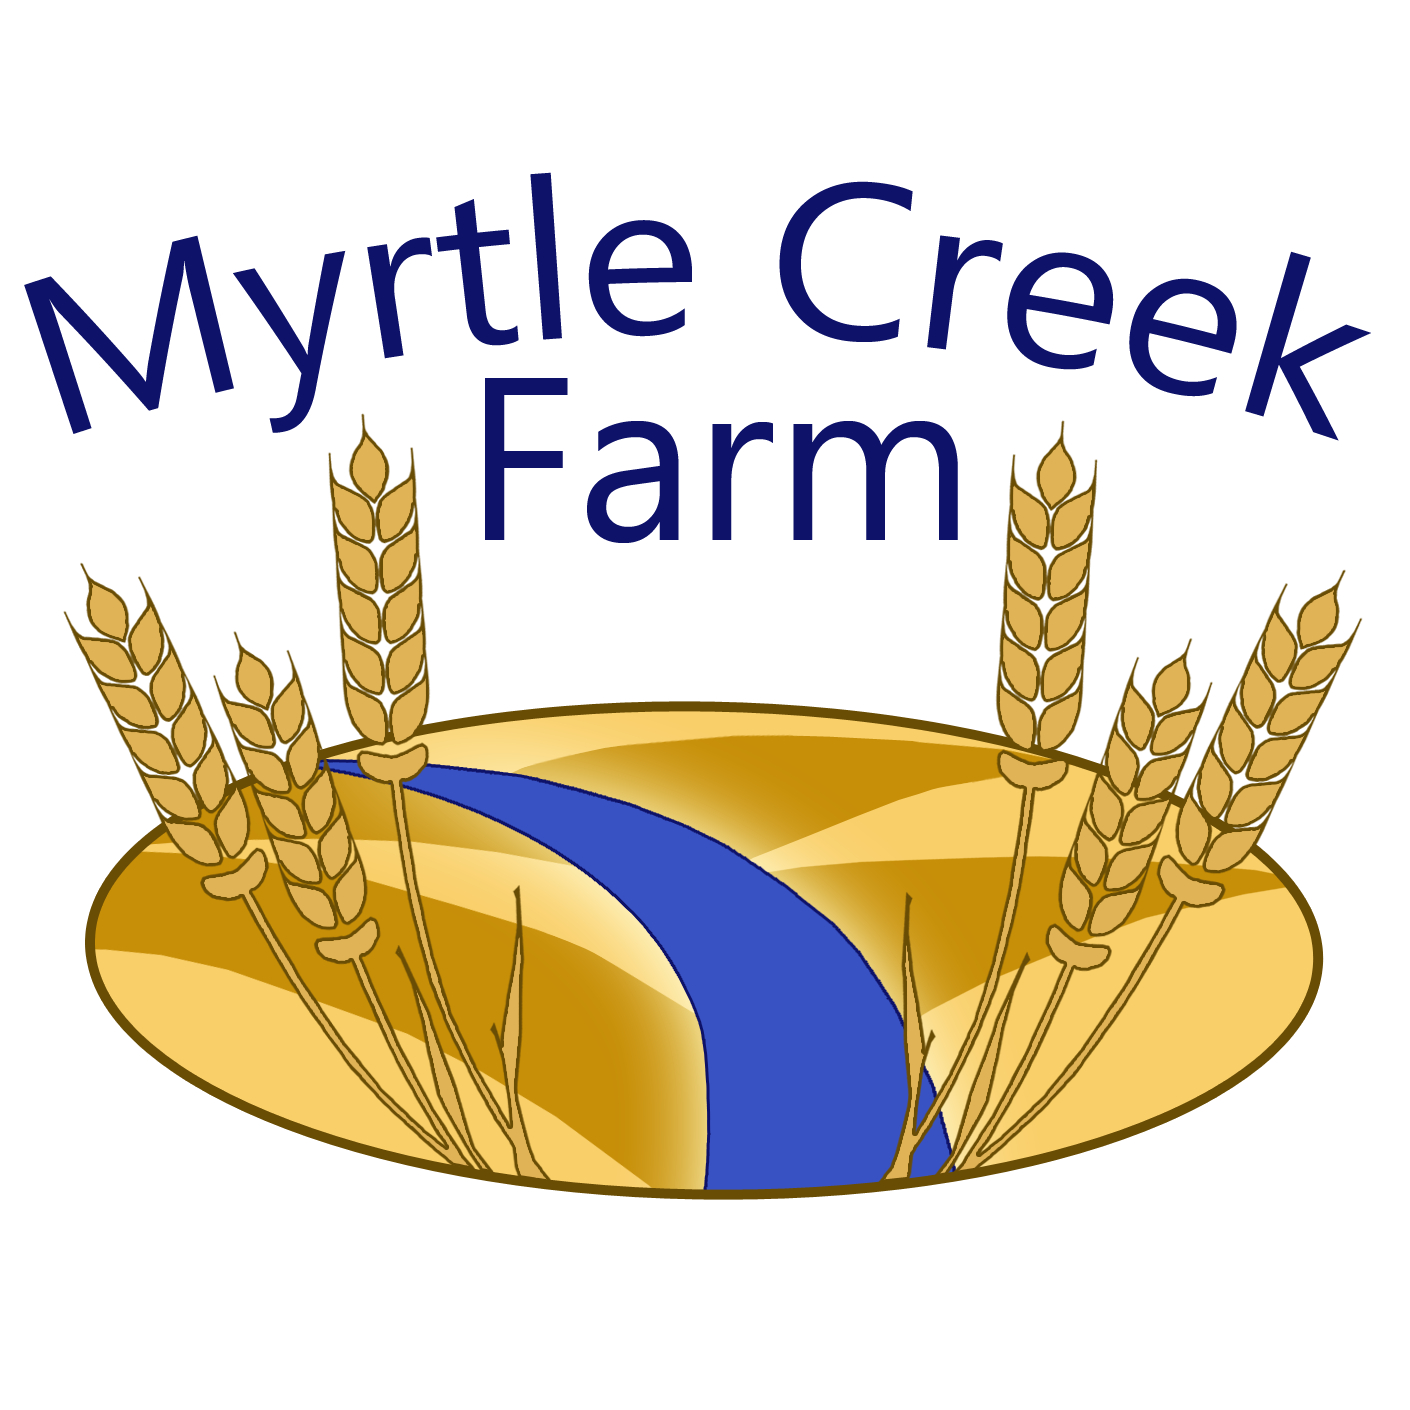 Myrtle Creek Farm